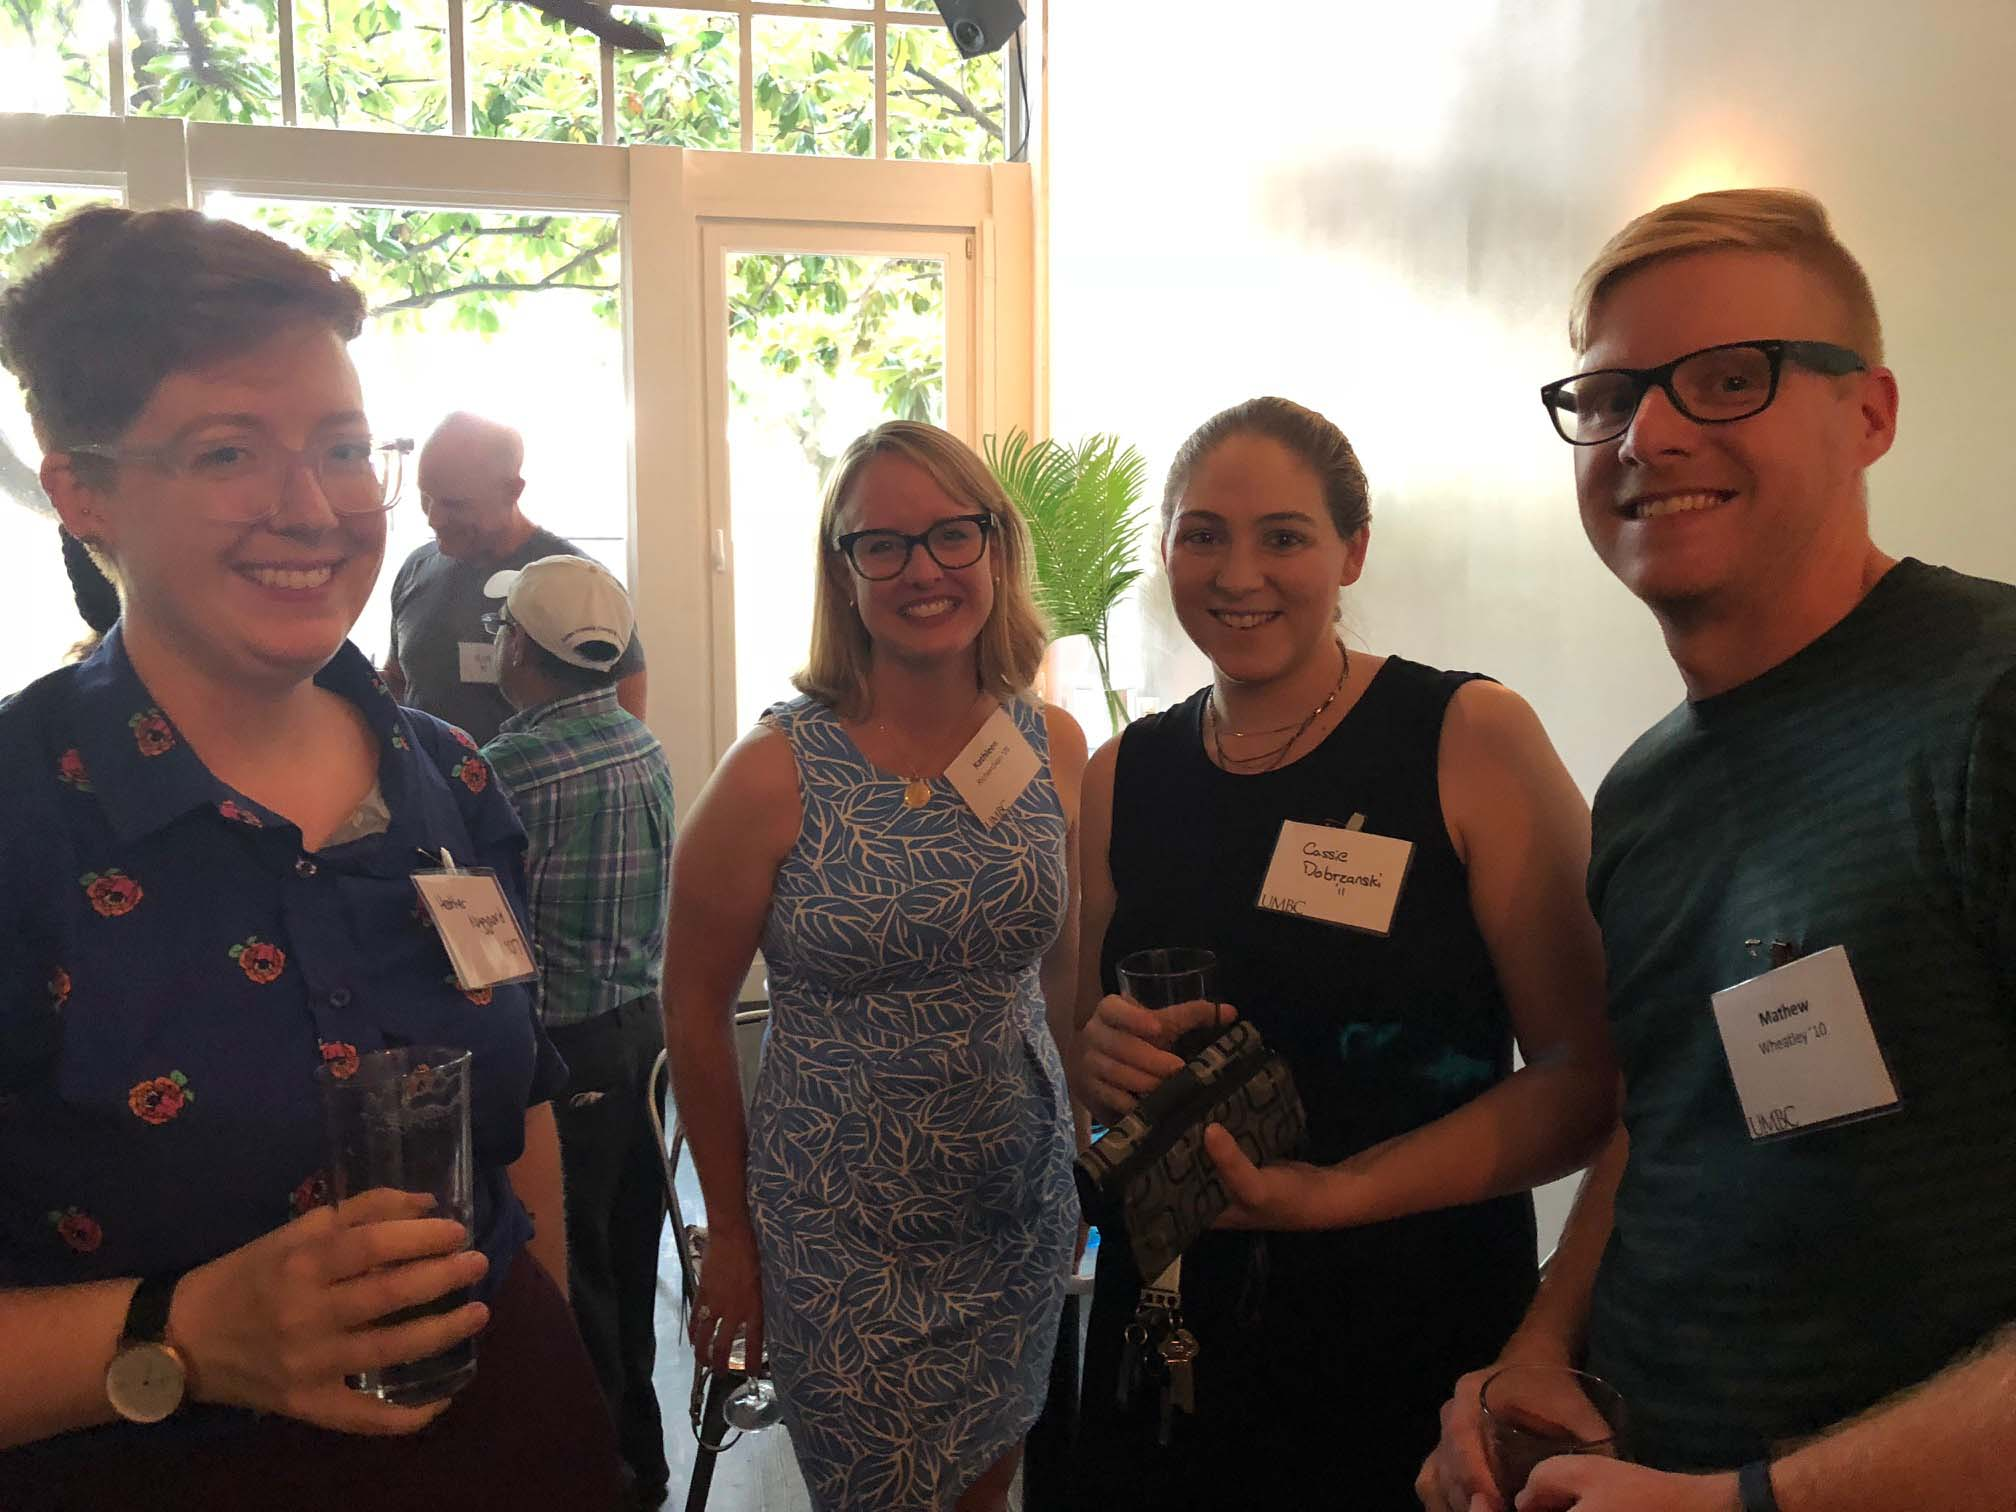 Group of four pose together for Seattle alumni gathering